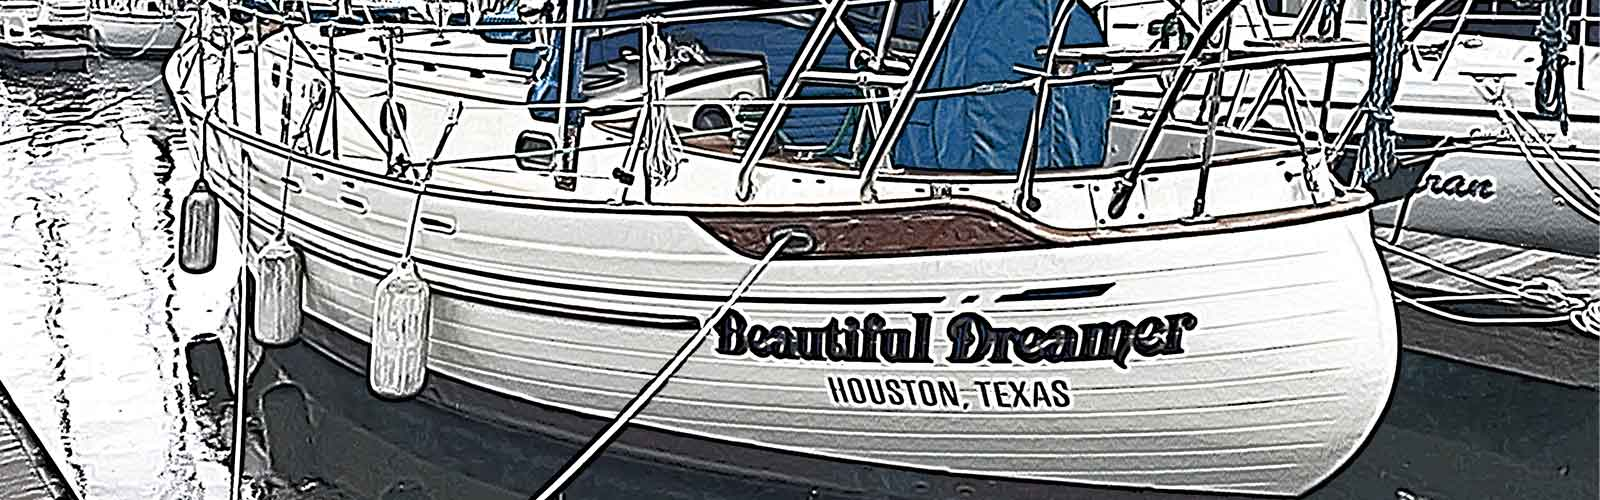 S/V Beautiful Dreamer Tayana 37